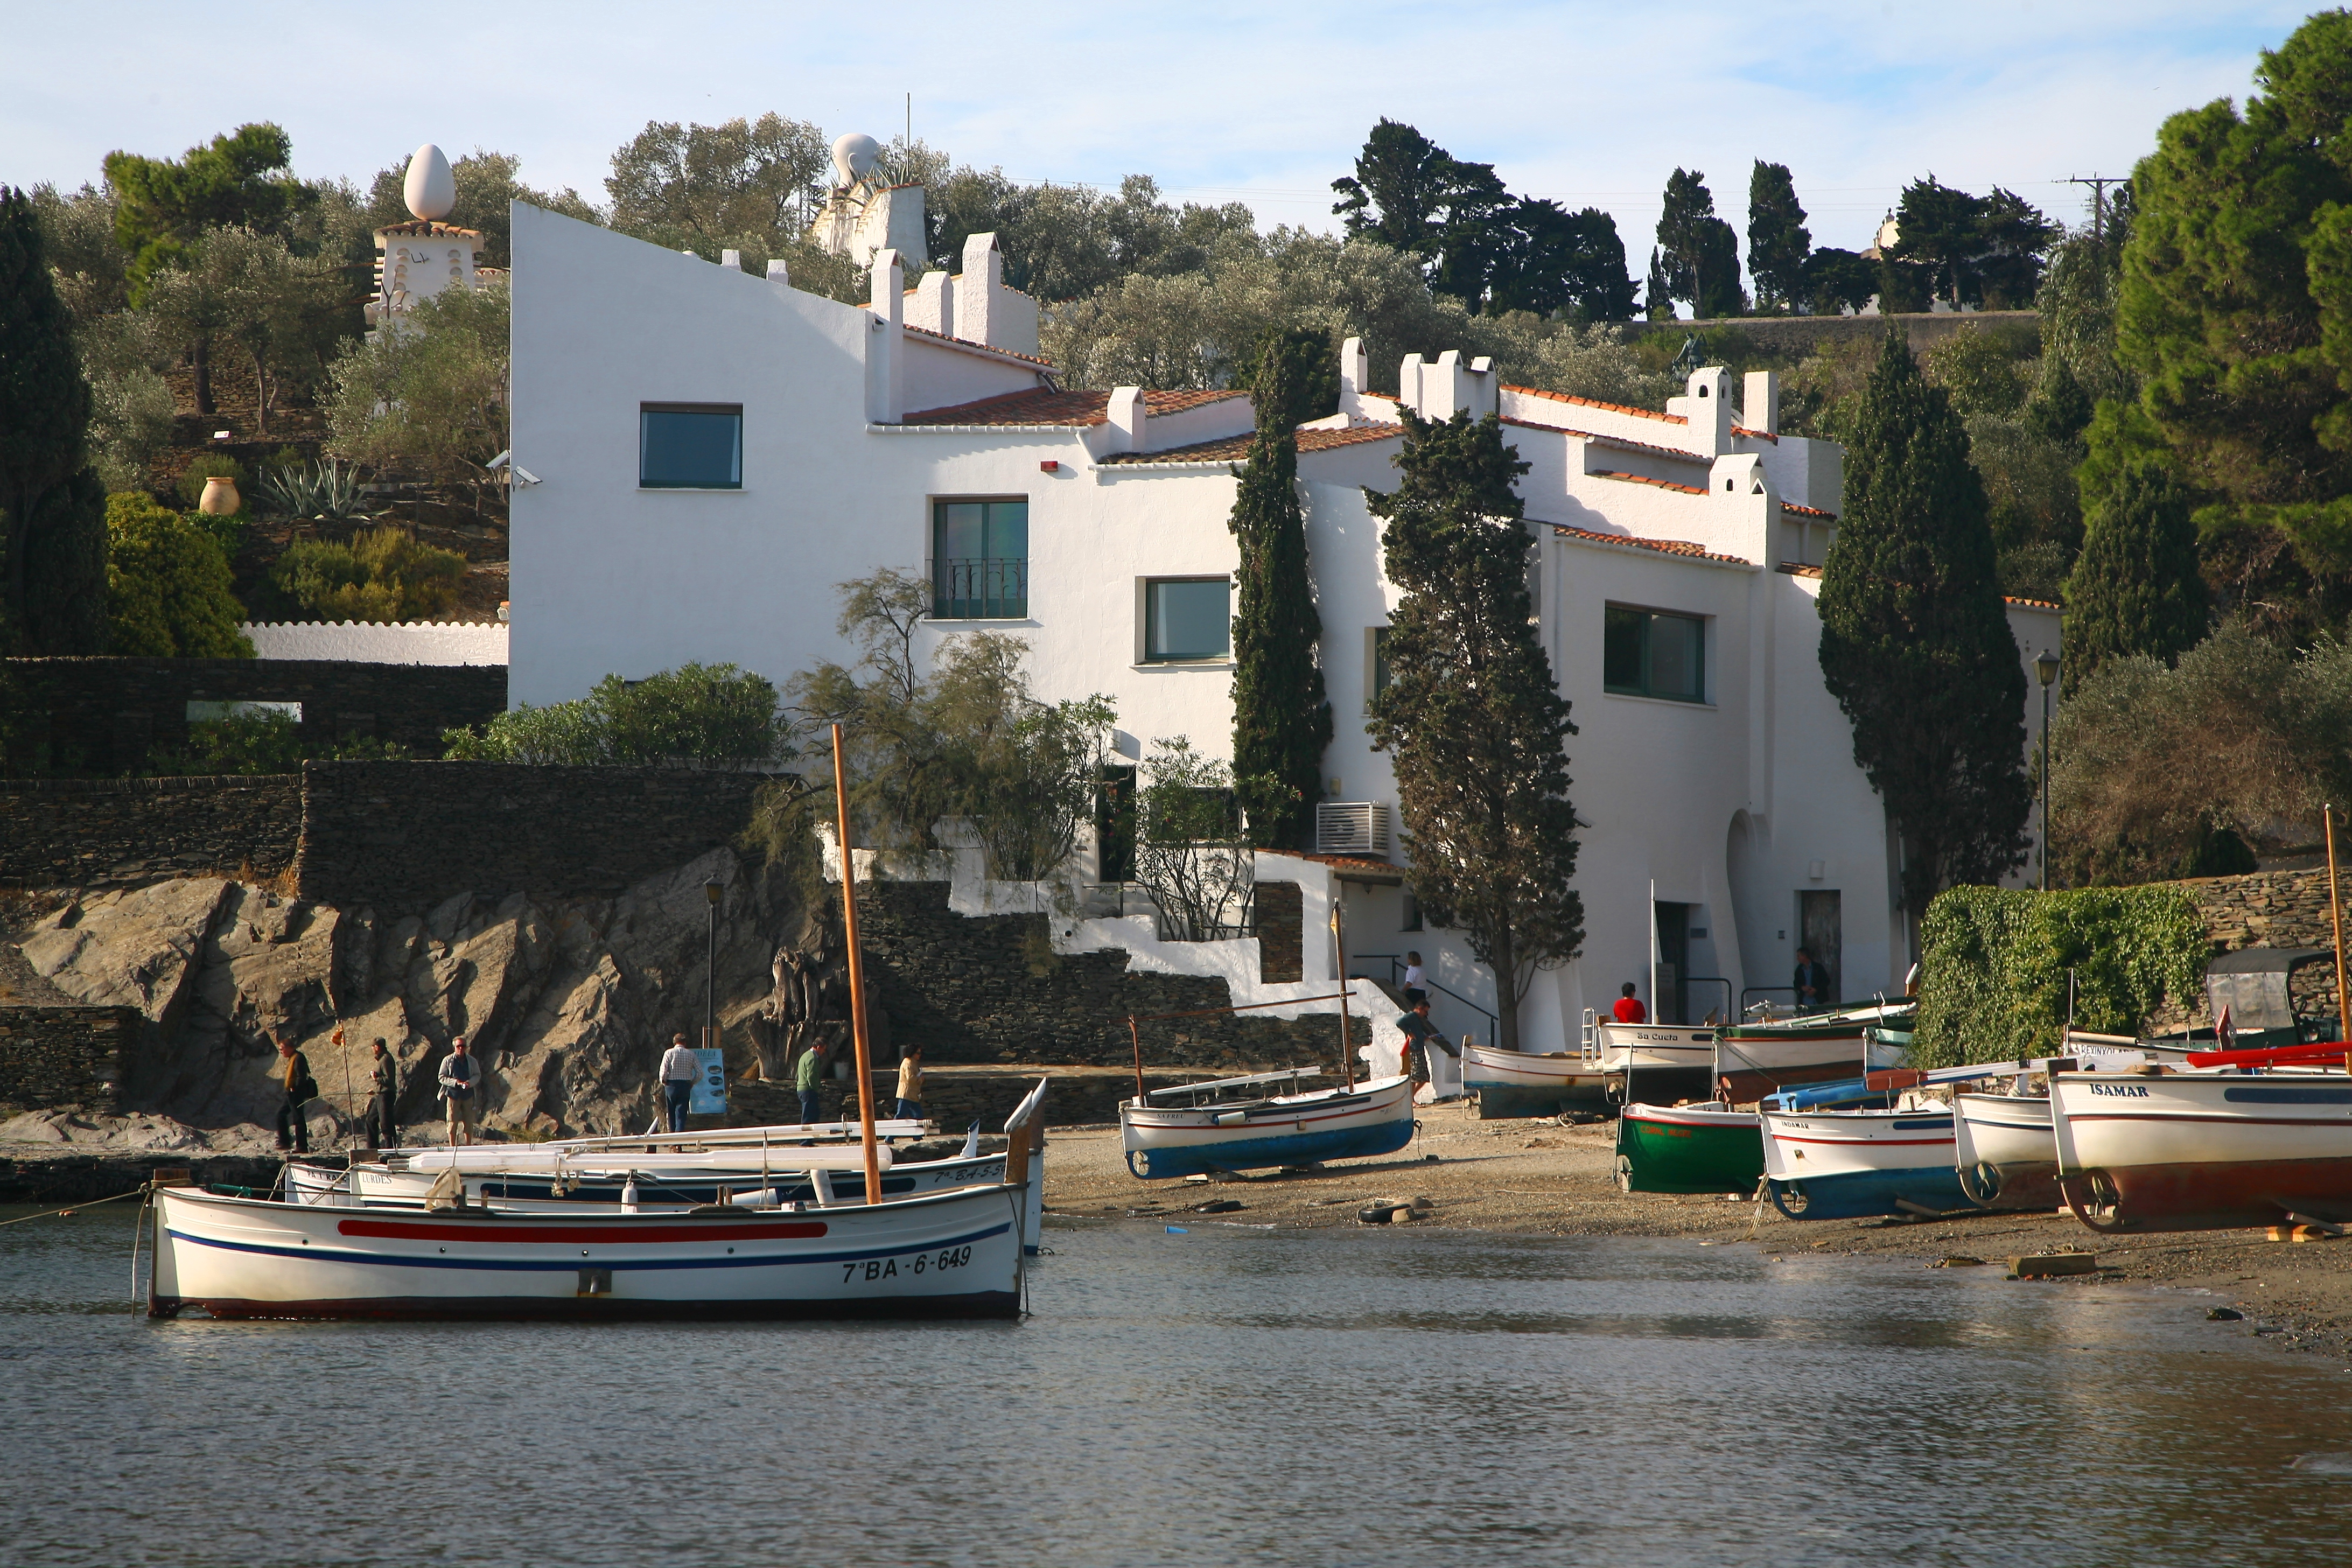 Cadaques Tourism Gastronomy Accommodation Hotels Restaurants